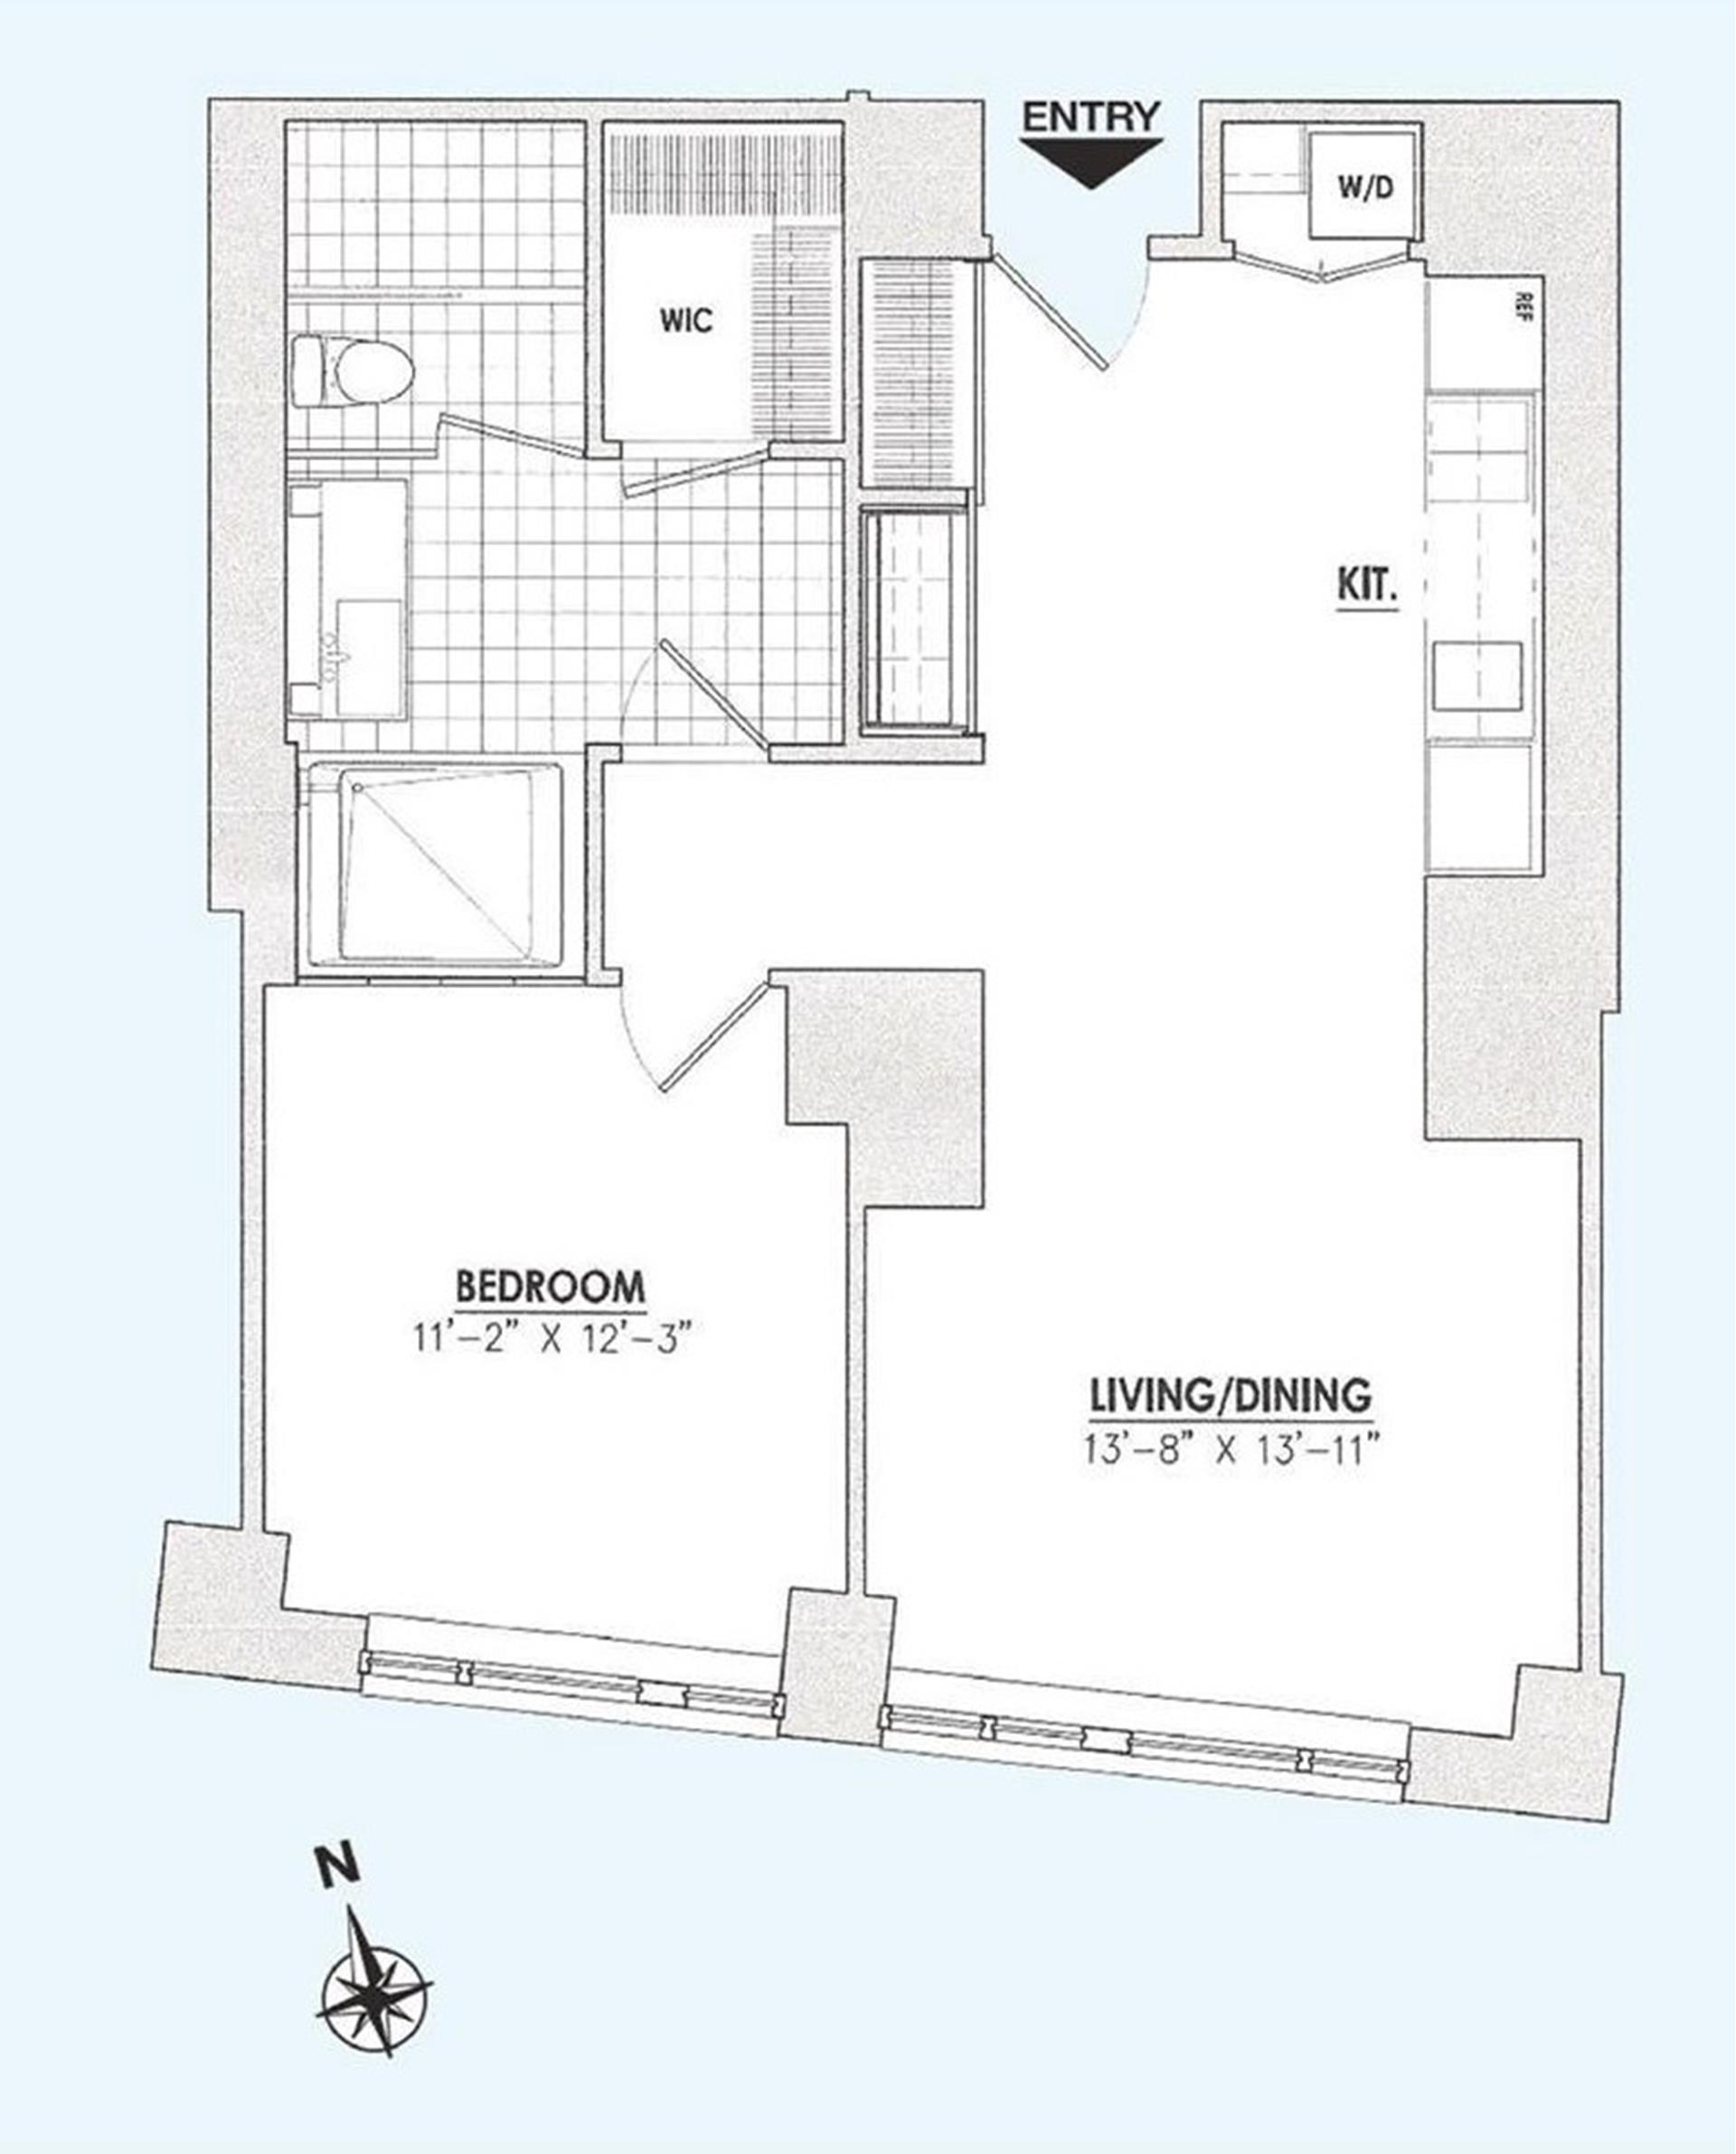 Floor plan of 15 William, 15 William St, 27B - Financial District, New York